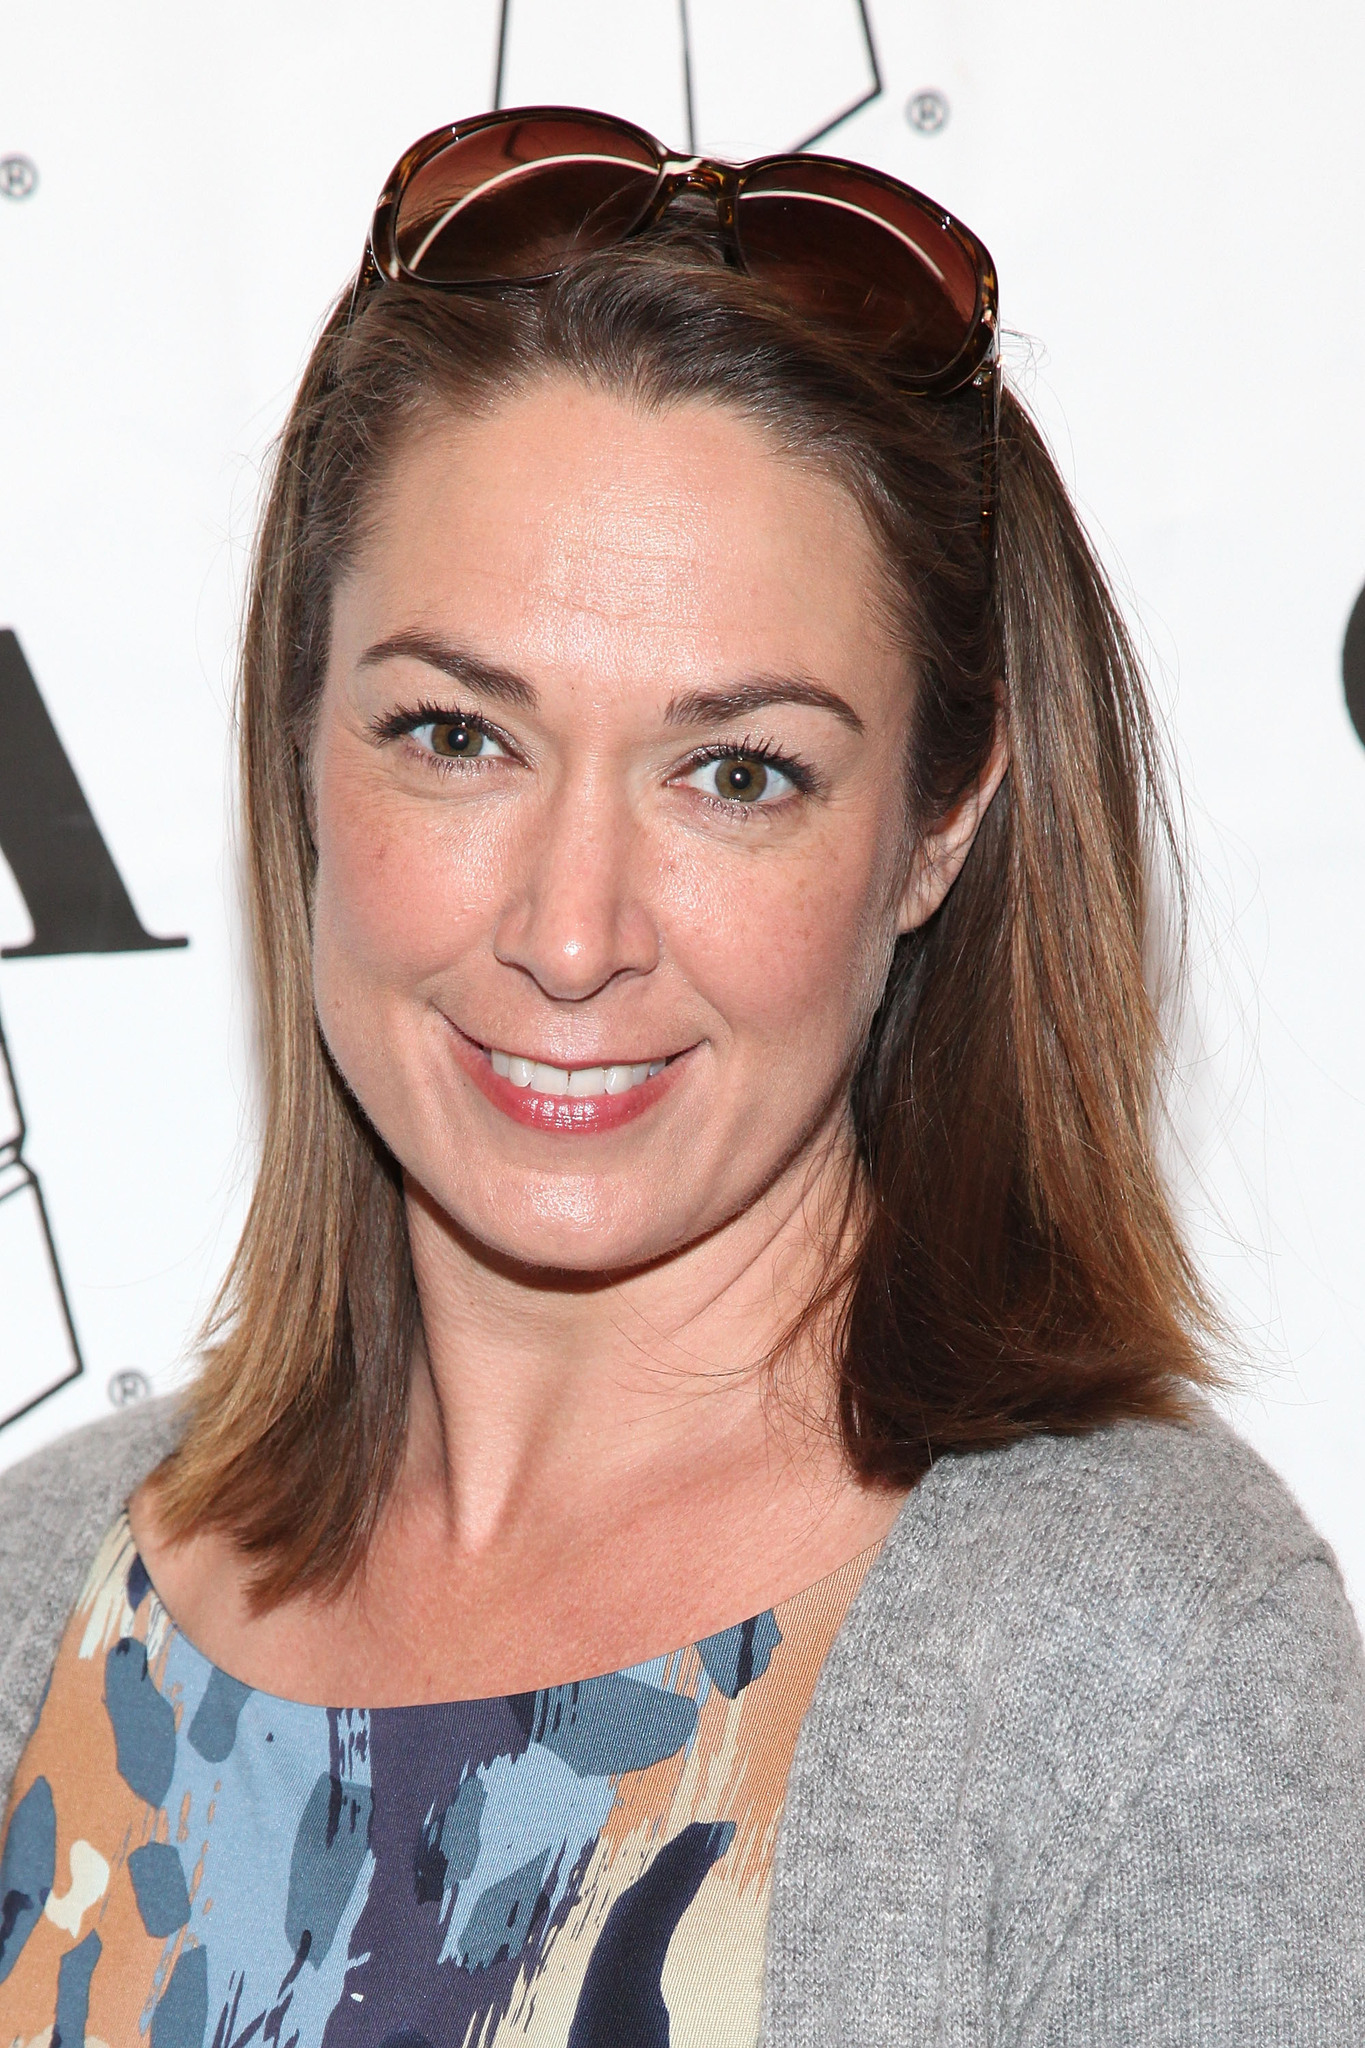 Elizabeth Marvel nude photos 2019